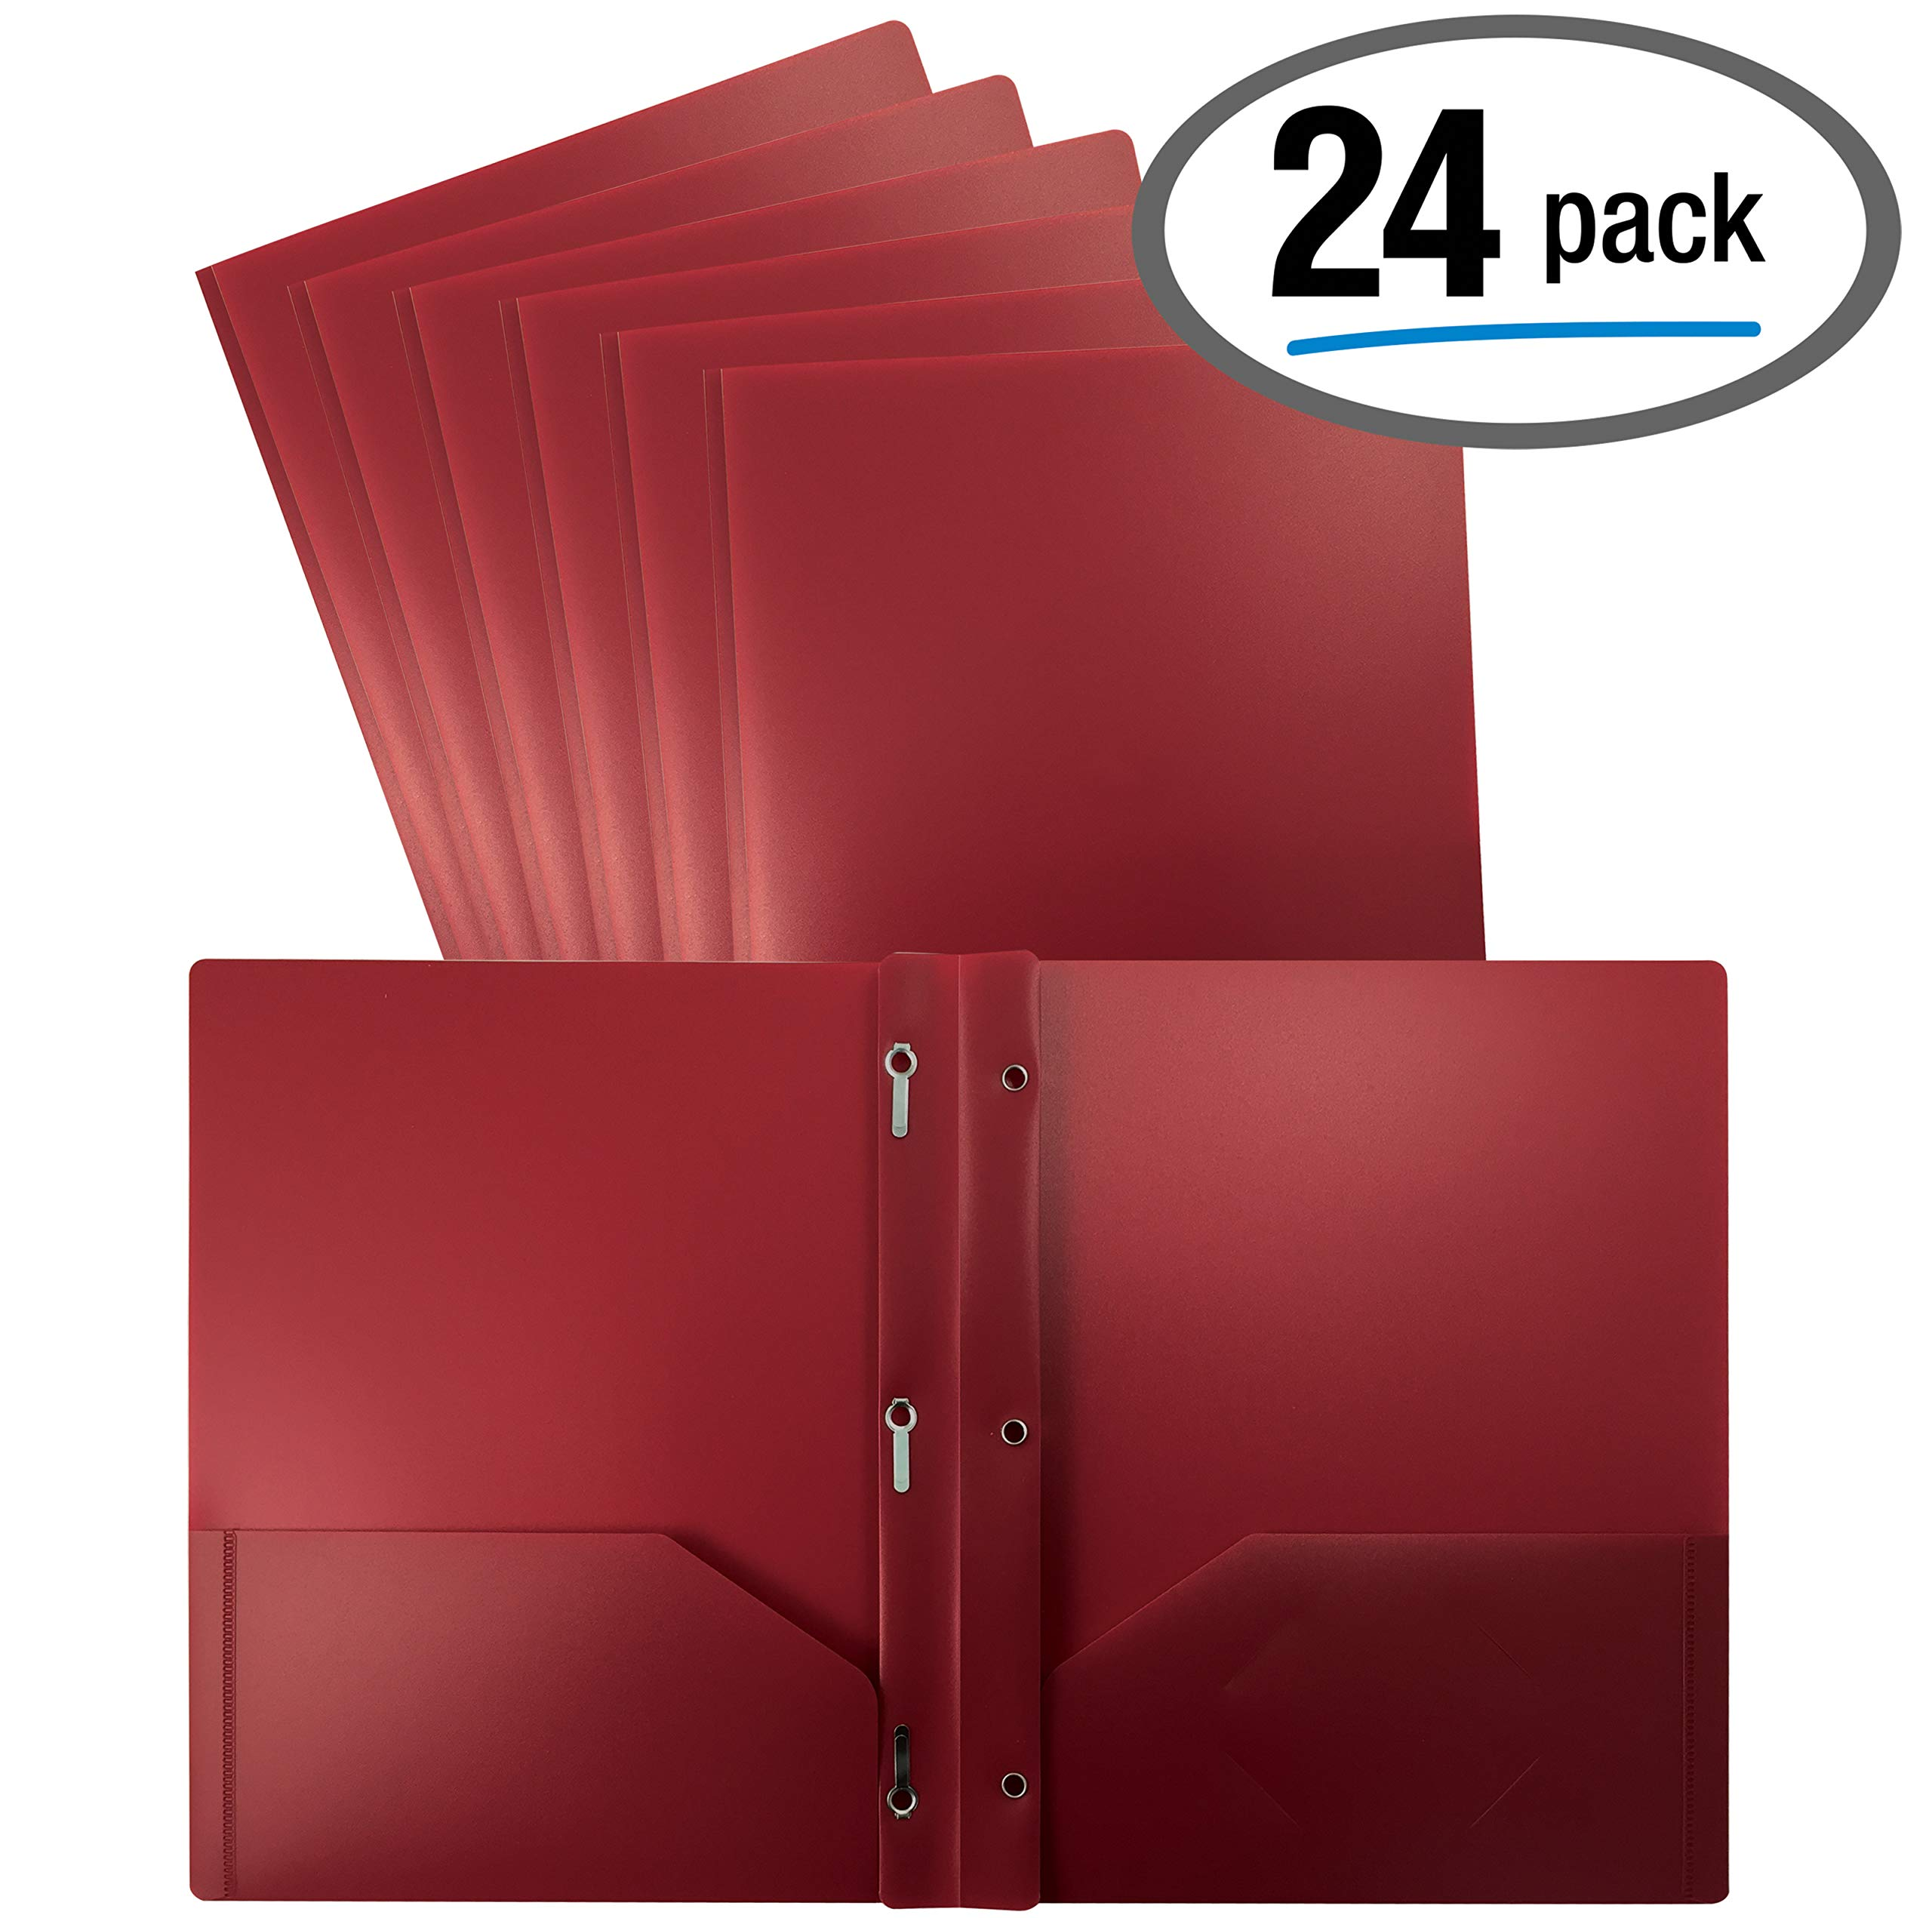 Better Office Products Burgundy Plastic 2 Pocket Folders with Prongs, 24 Pack, Heavyweight, Letter Size Poly Folders with 3 Metal Prongs Fastener Clips, Burgundy Red by Better Office Products